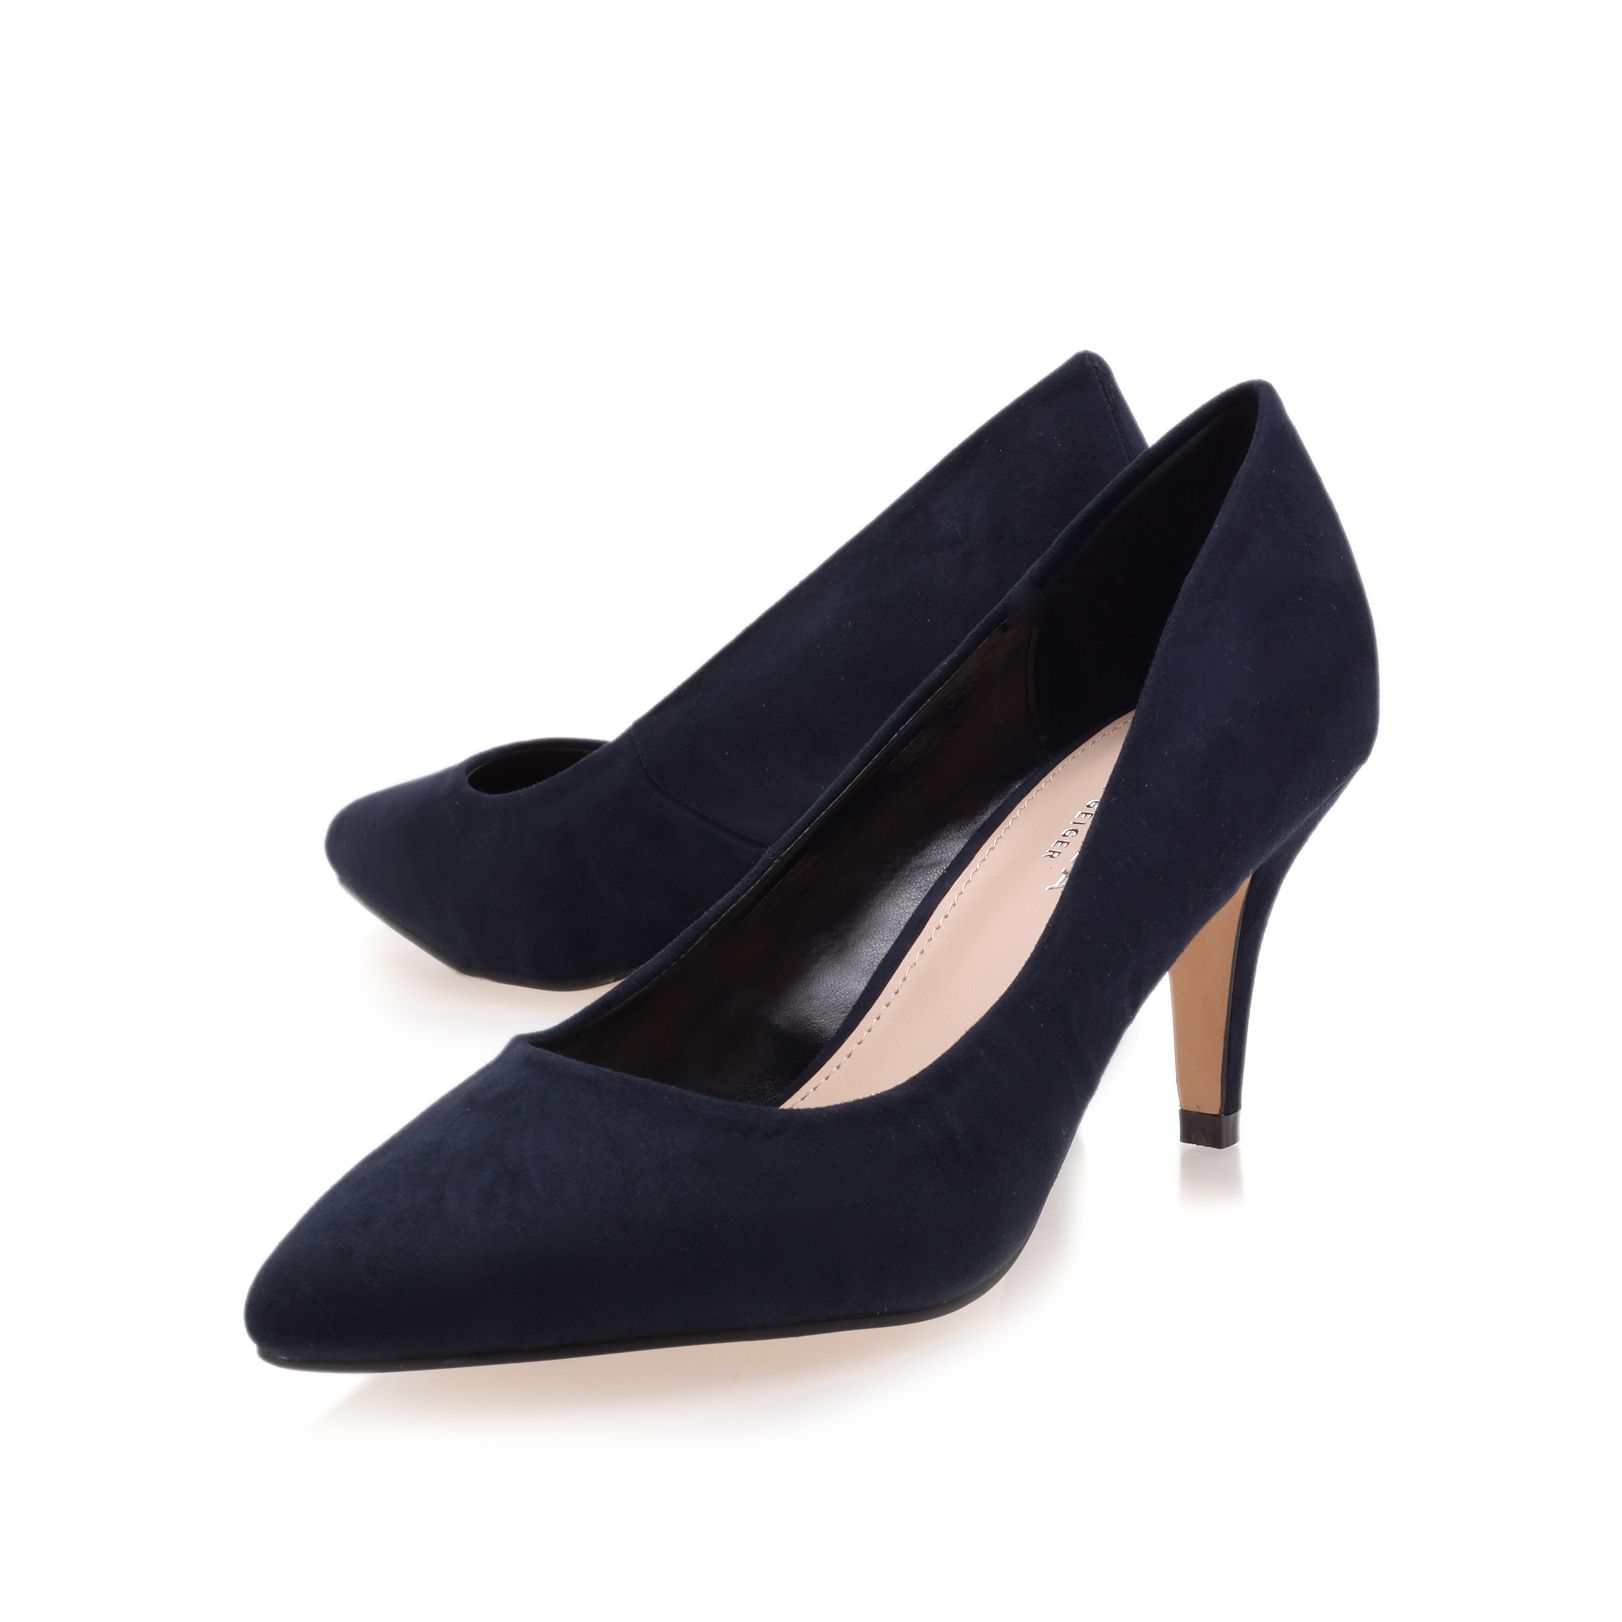 Kairo court shoes